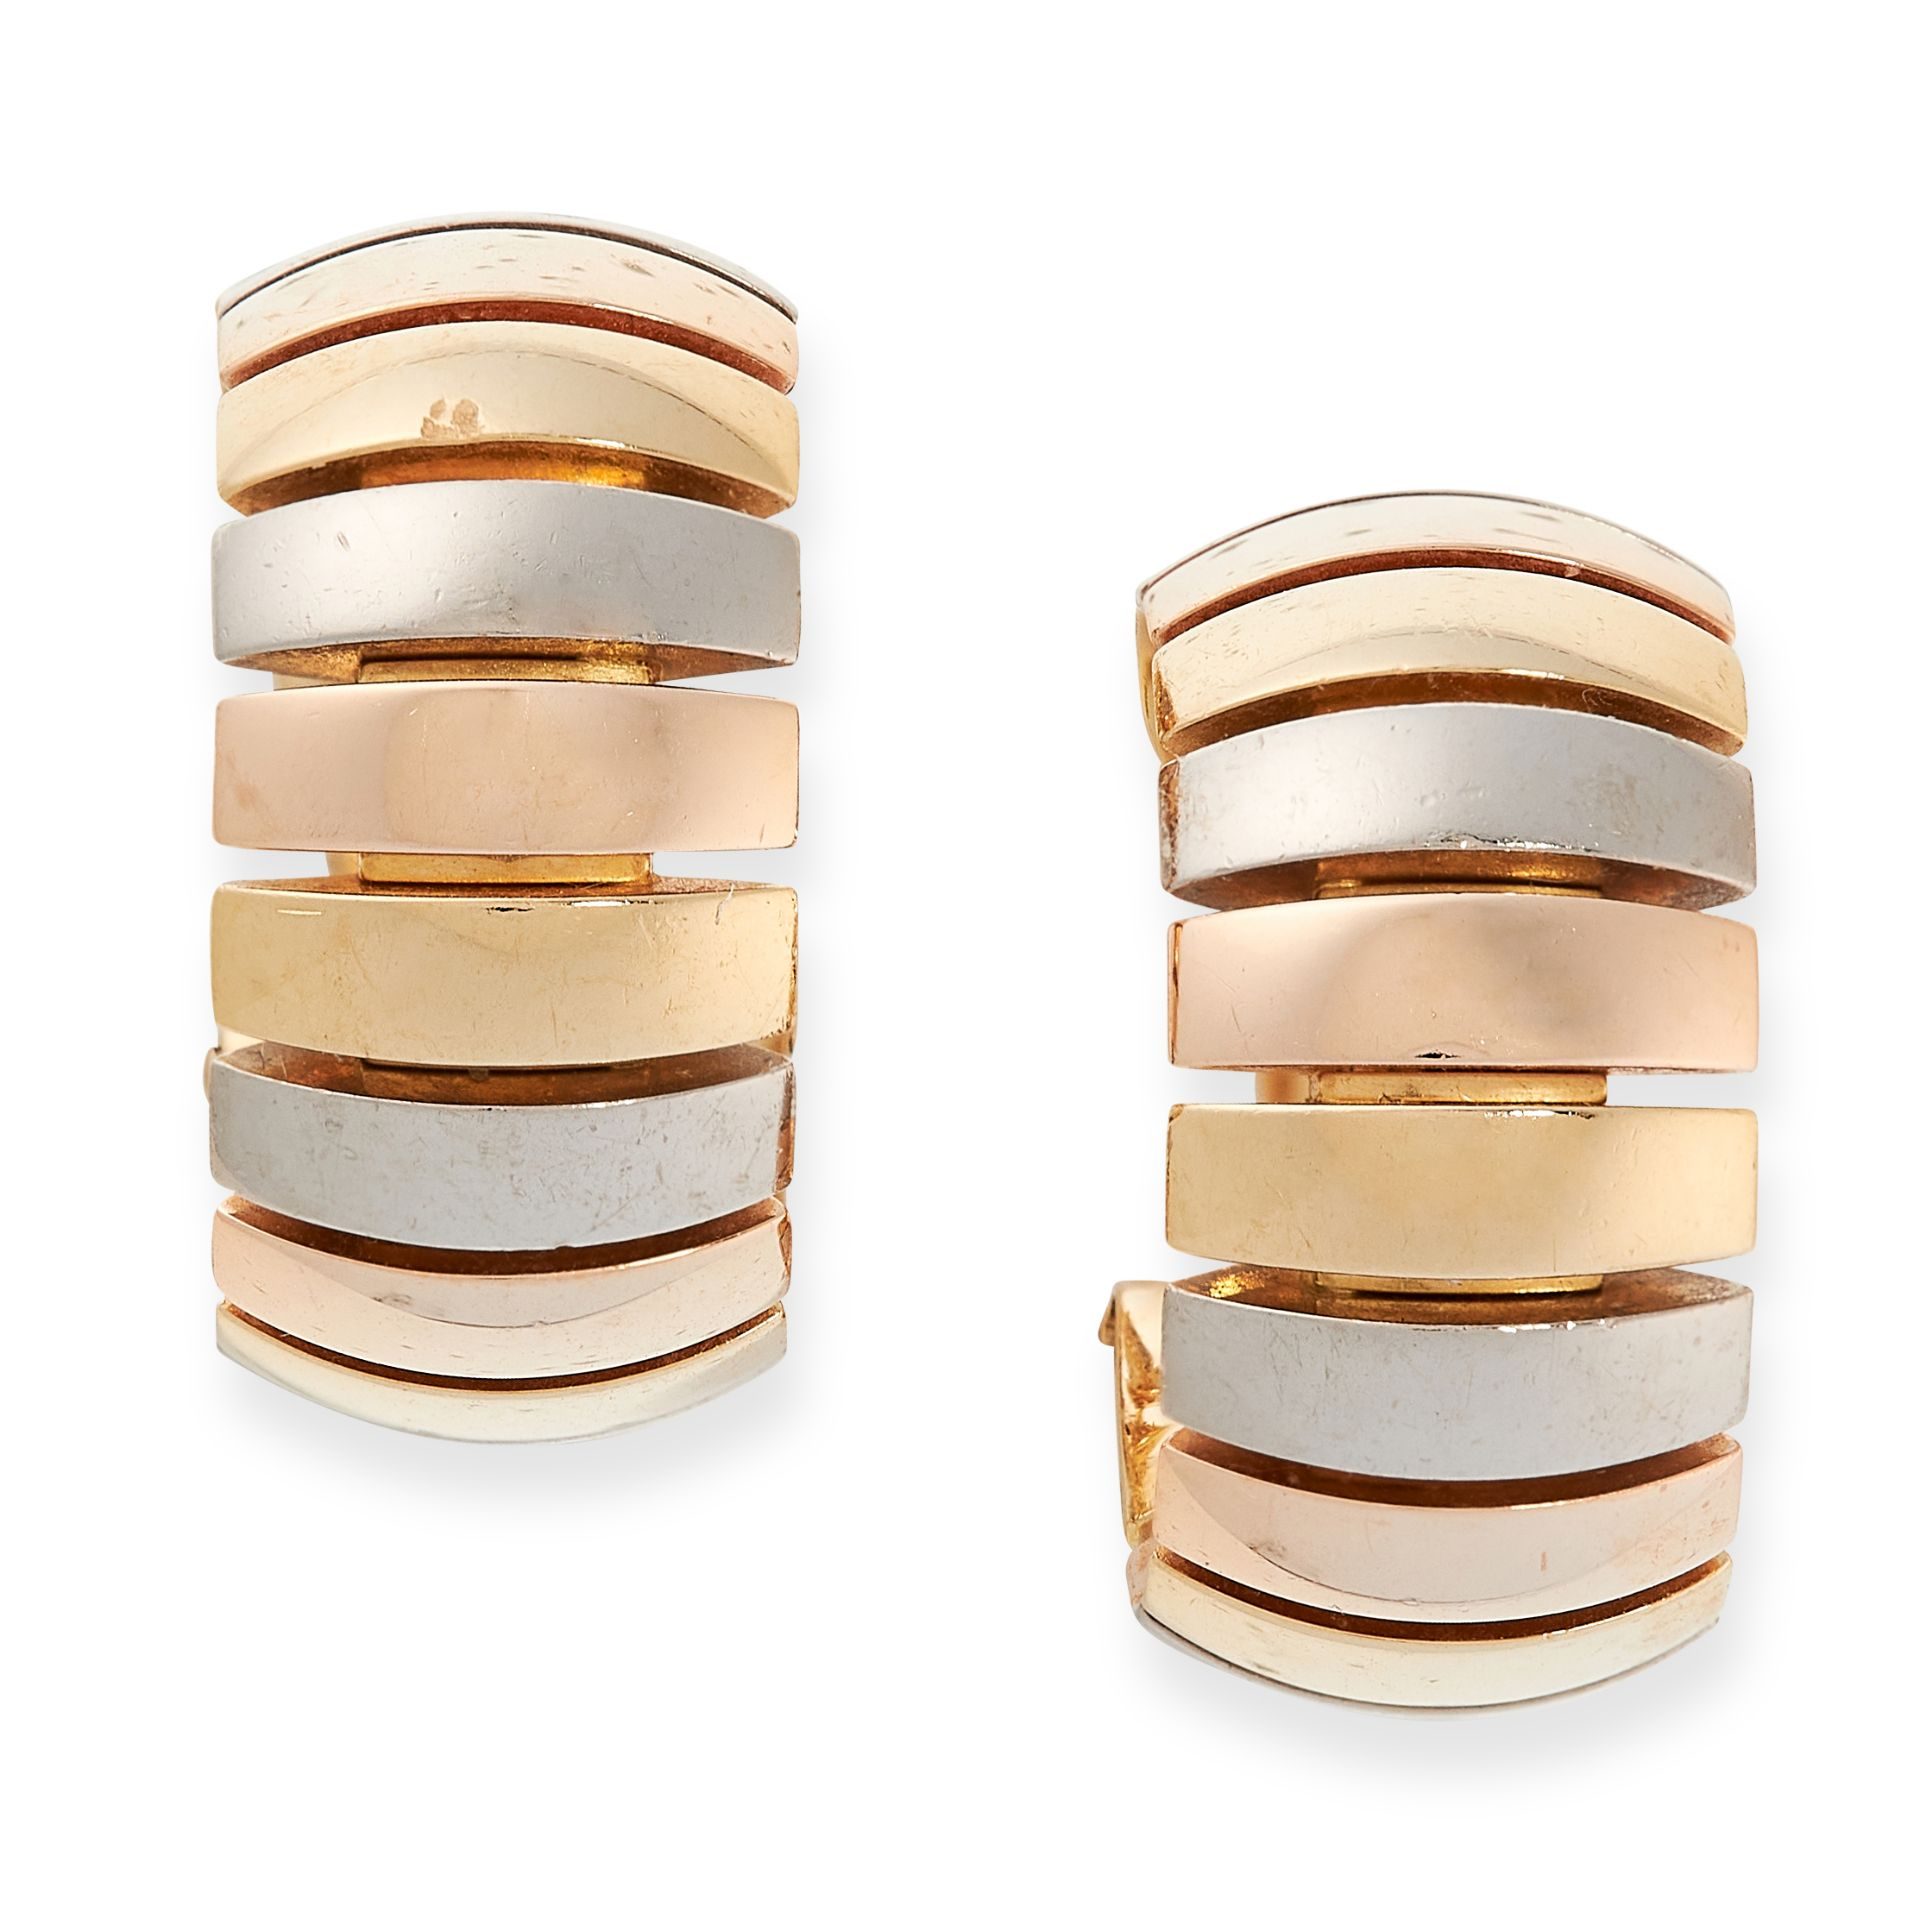 A PAIR OF TRINITY DE CARTIER HOOP EARRINGS, CARTIER in 18ct yellow, white and rose gold, each